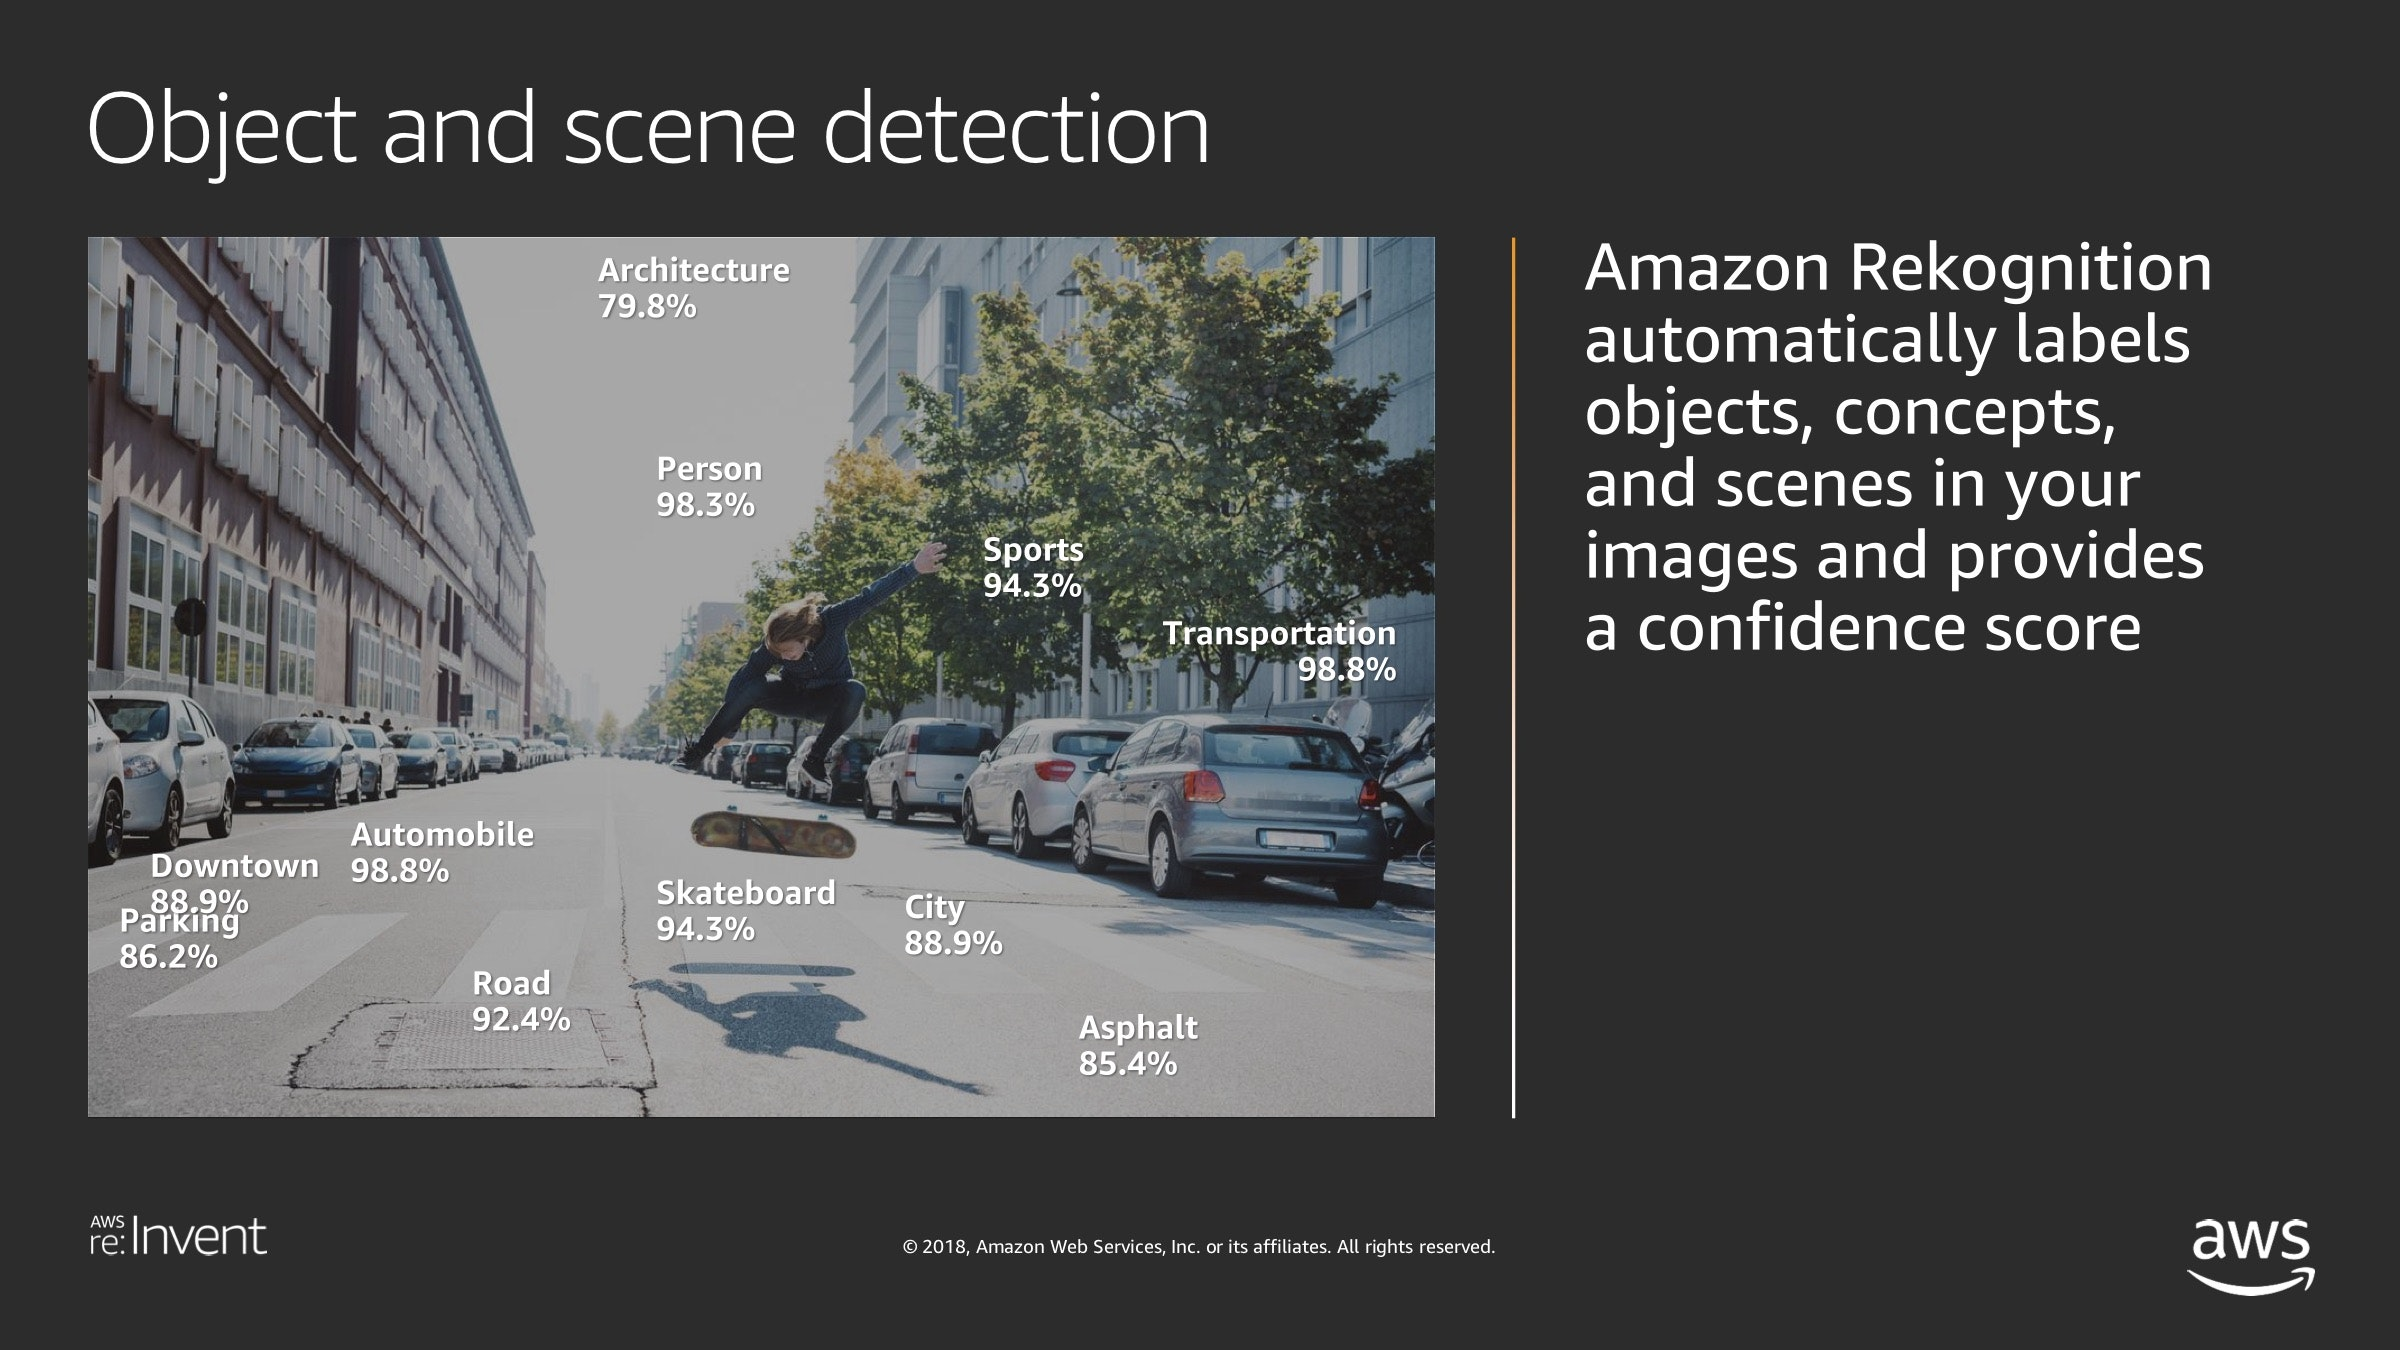 deep-dive-on-amazon-rekognition-object-and-scene-detection.jpg